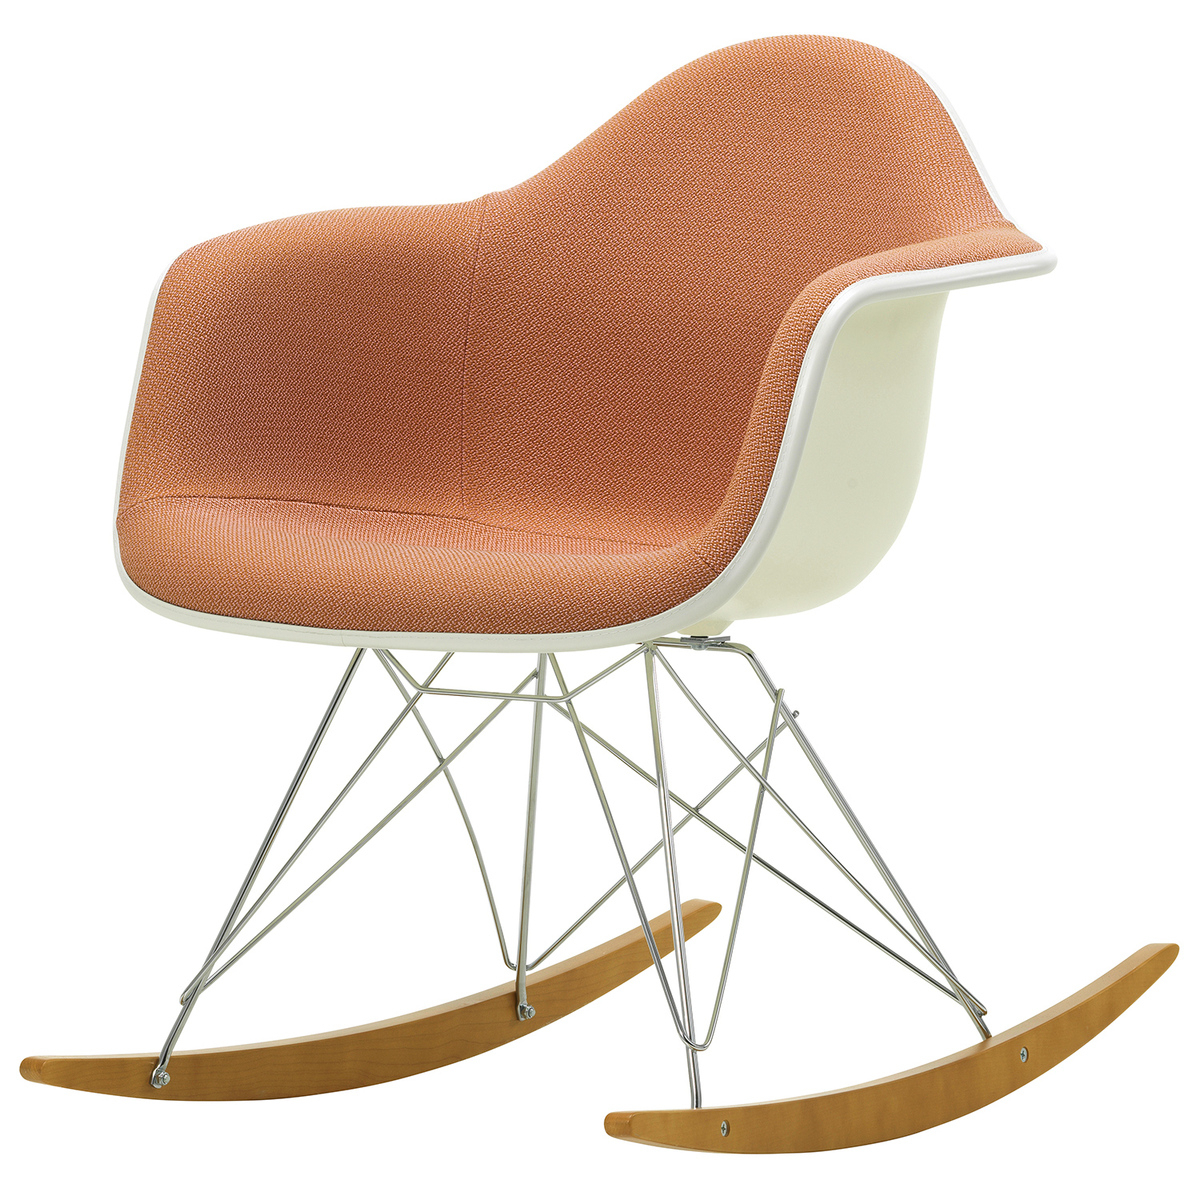 Eames Rar Rocking Chair, Upholstered, Pale Rose/cognac Intended For Wooden Rocking Chairs With Fabric Upholstered Cushions, White (View 7 of 20)